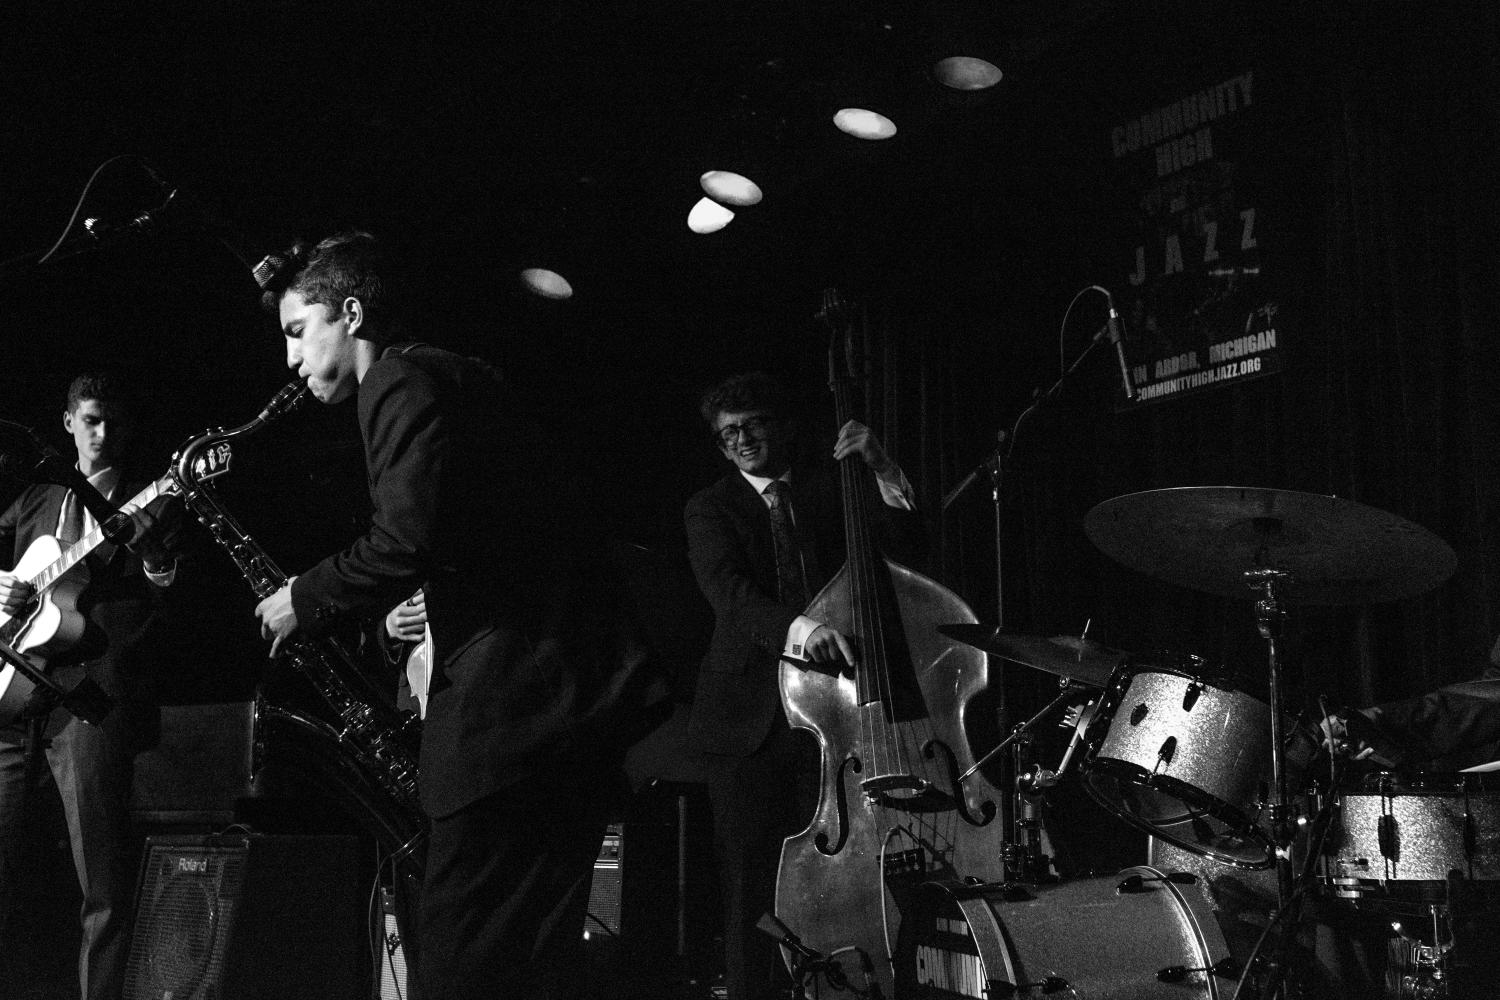 CHS+Jazz+students+perform+at+The+Ark+on+May+22%2C+2017.+Photos+by+Alec+Redding